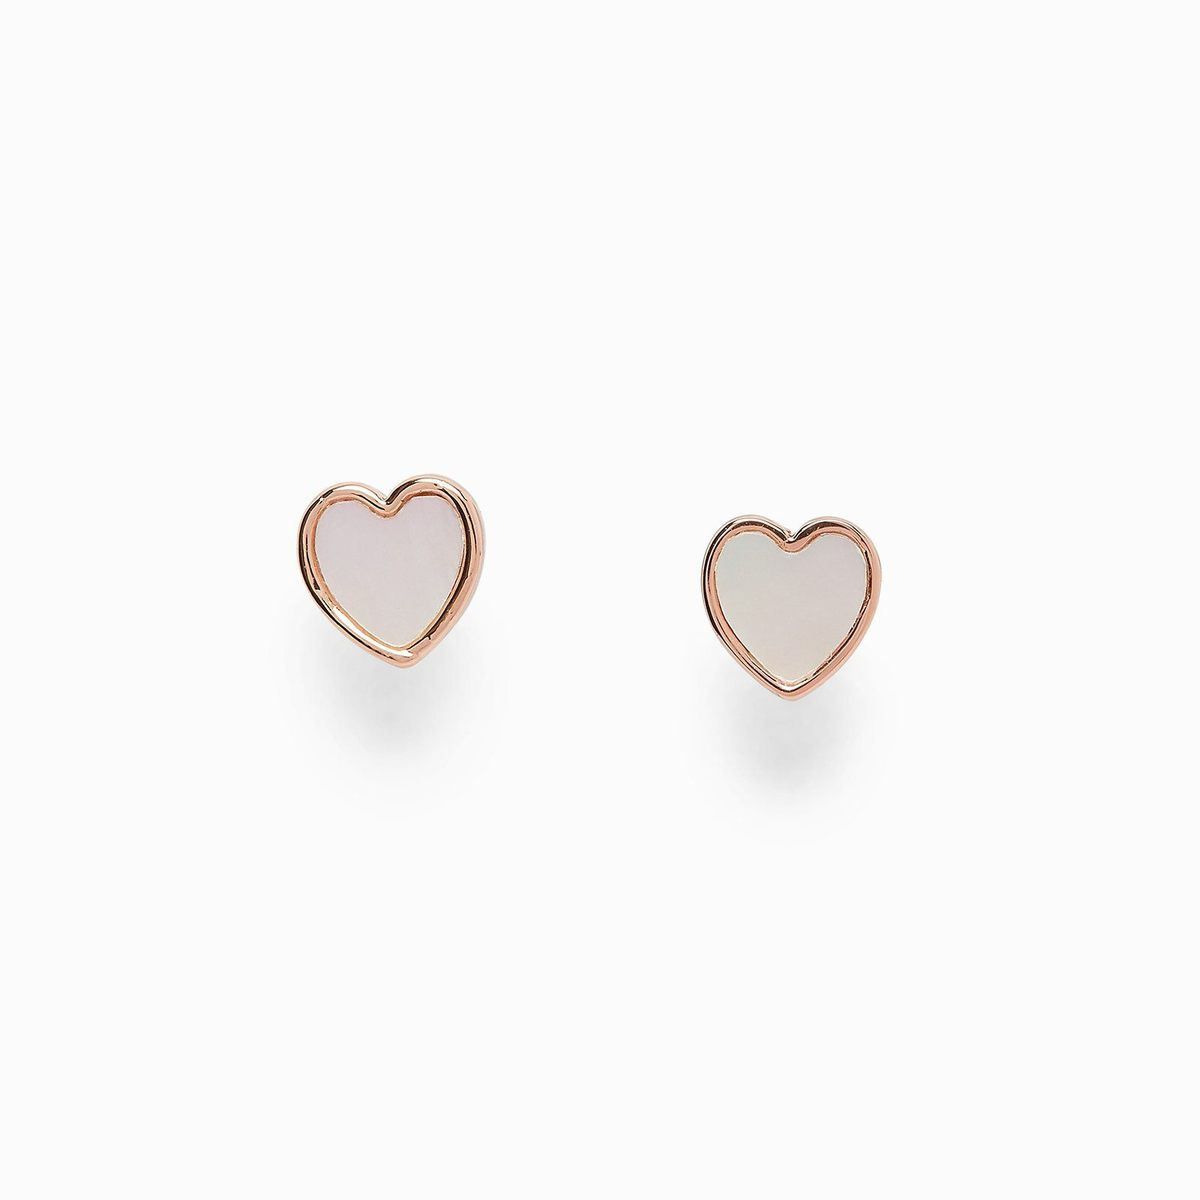 Heart of Pearl Stud Earrings